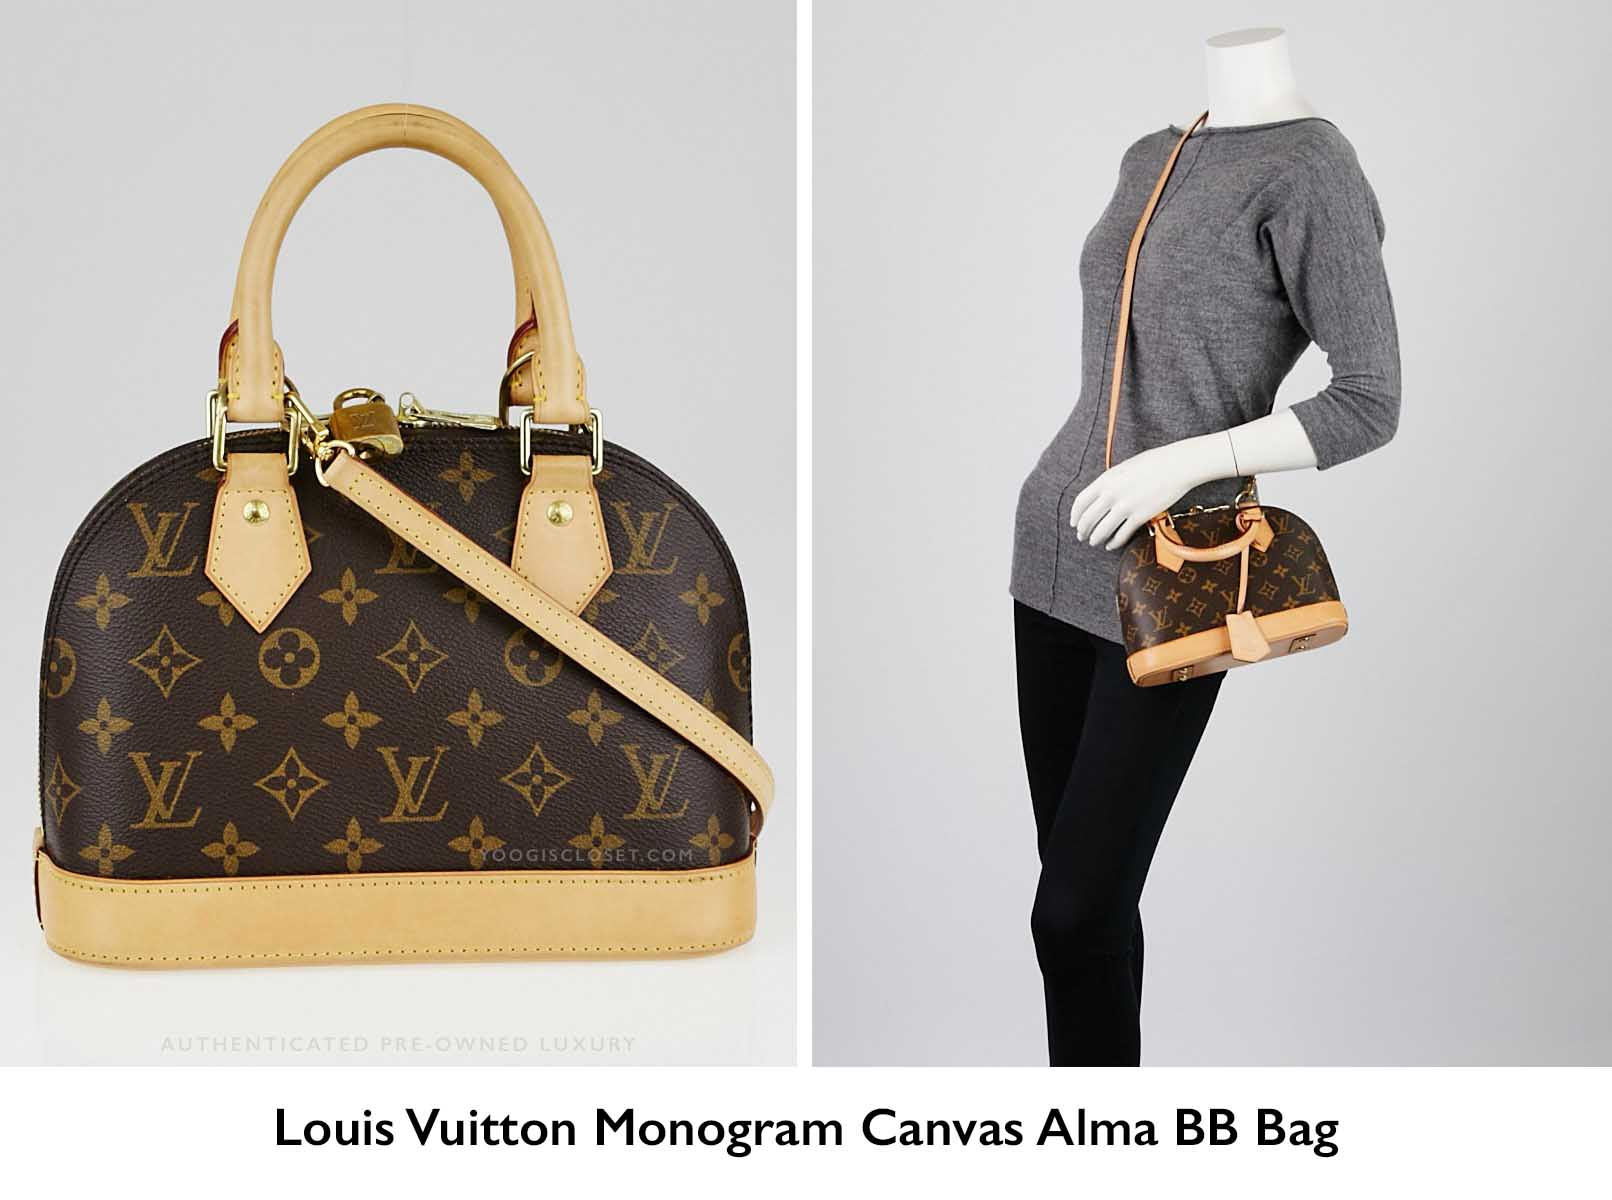 Authentic Louis Vuitton Monogram Canvas Alma Bb Crossbody Bag Yoogiscloset